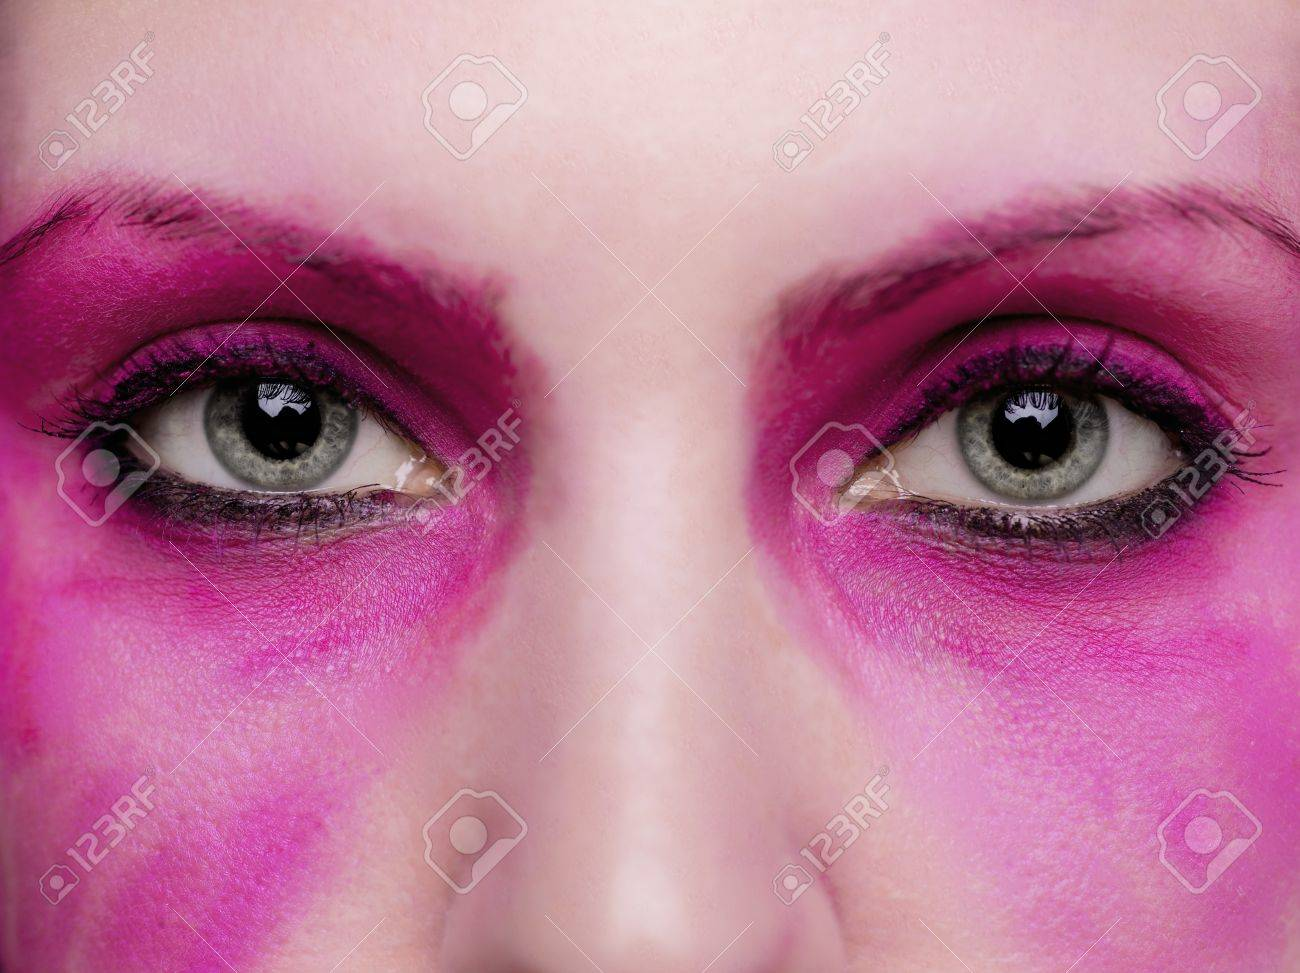 A close up on a pair of eyes surrounded by hot pink make up. Stock Photo - 17134439